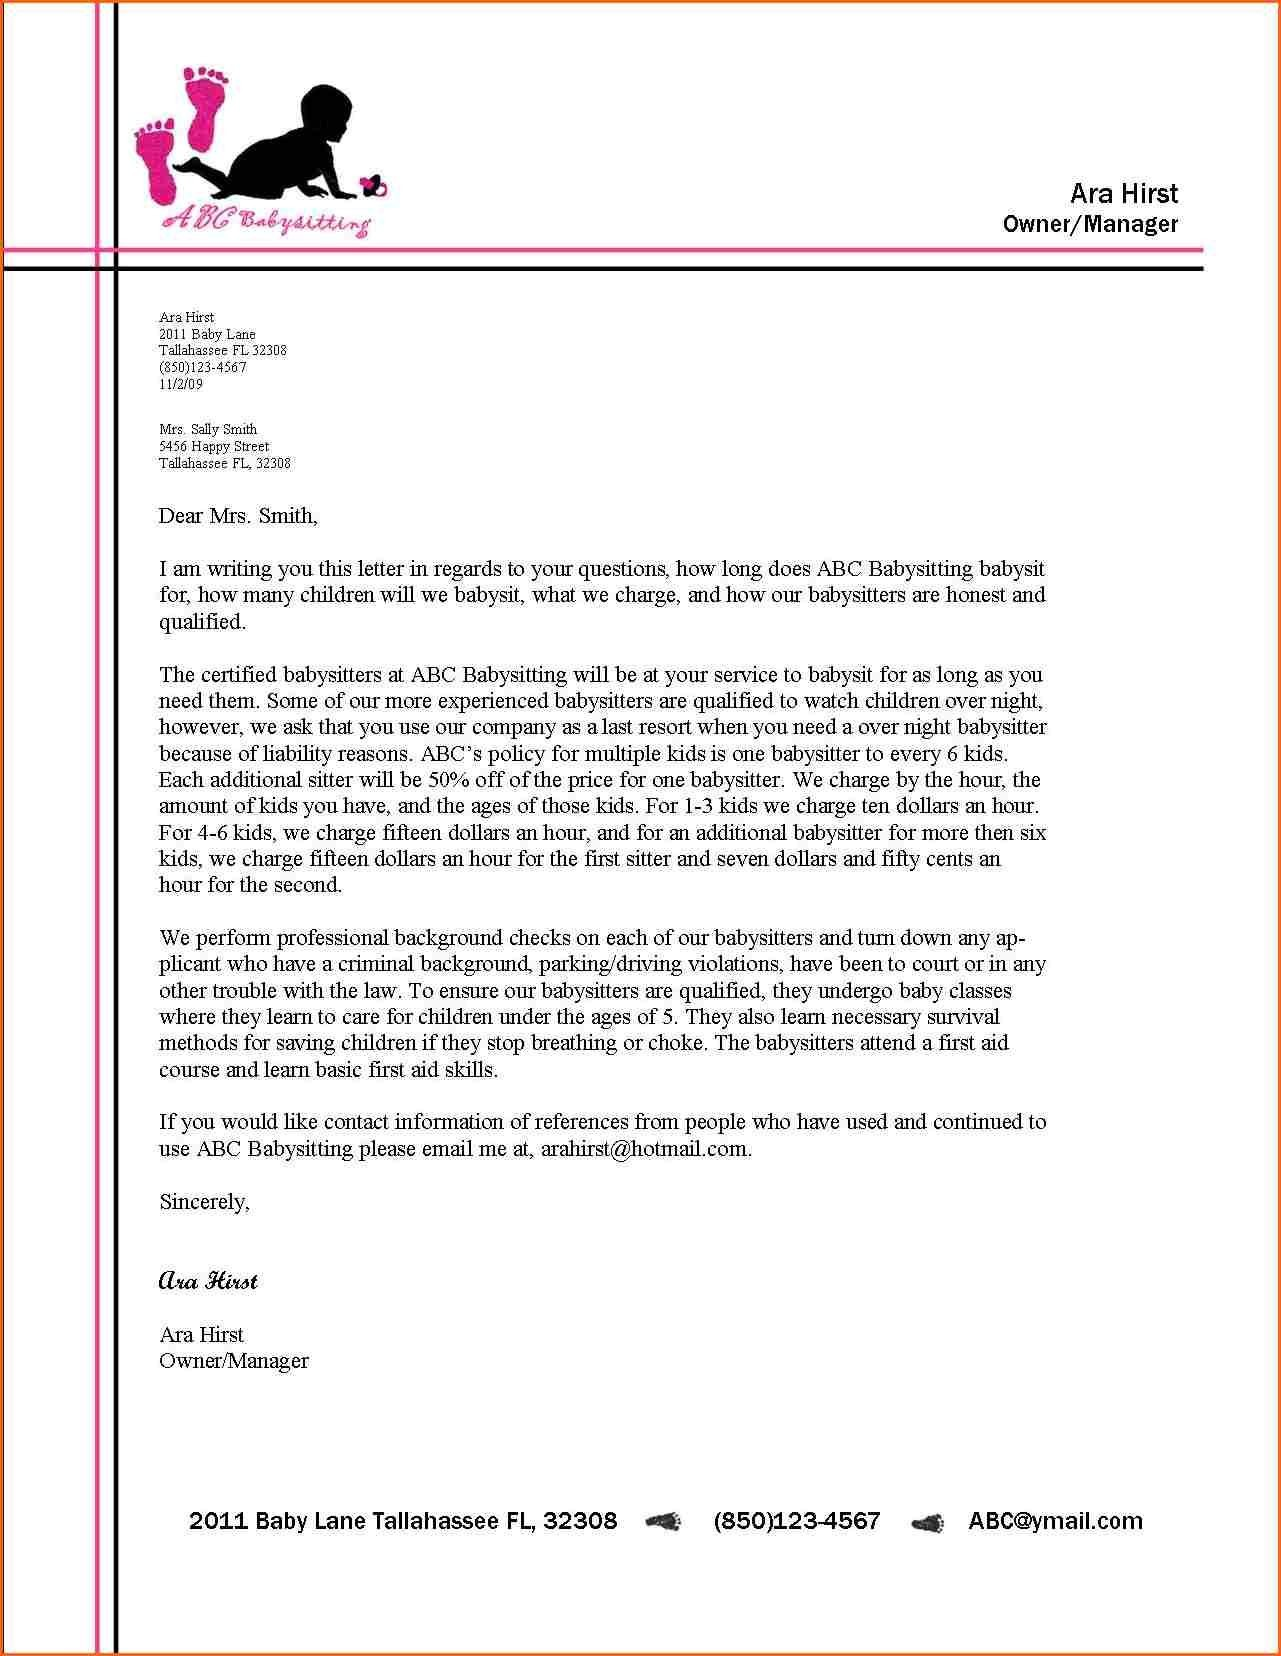 Examples Of How To Format A Business Letter New Business Letter